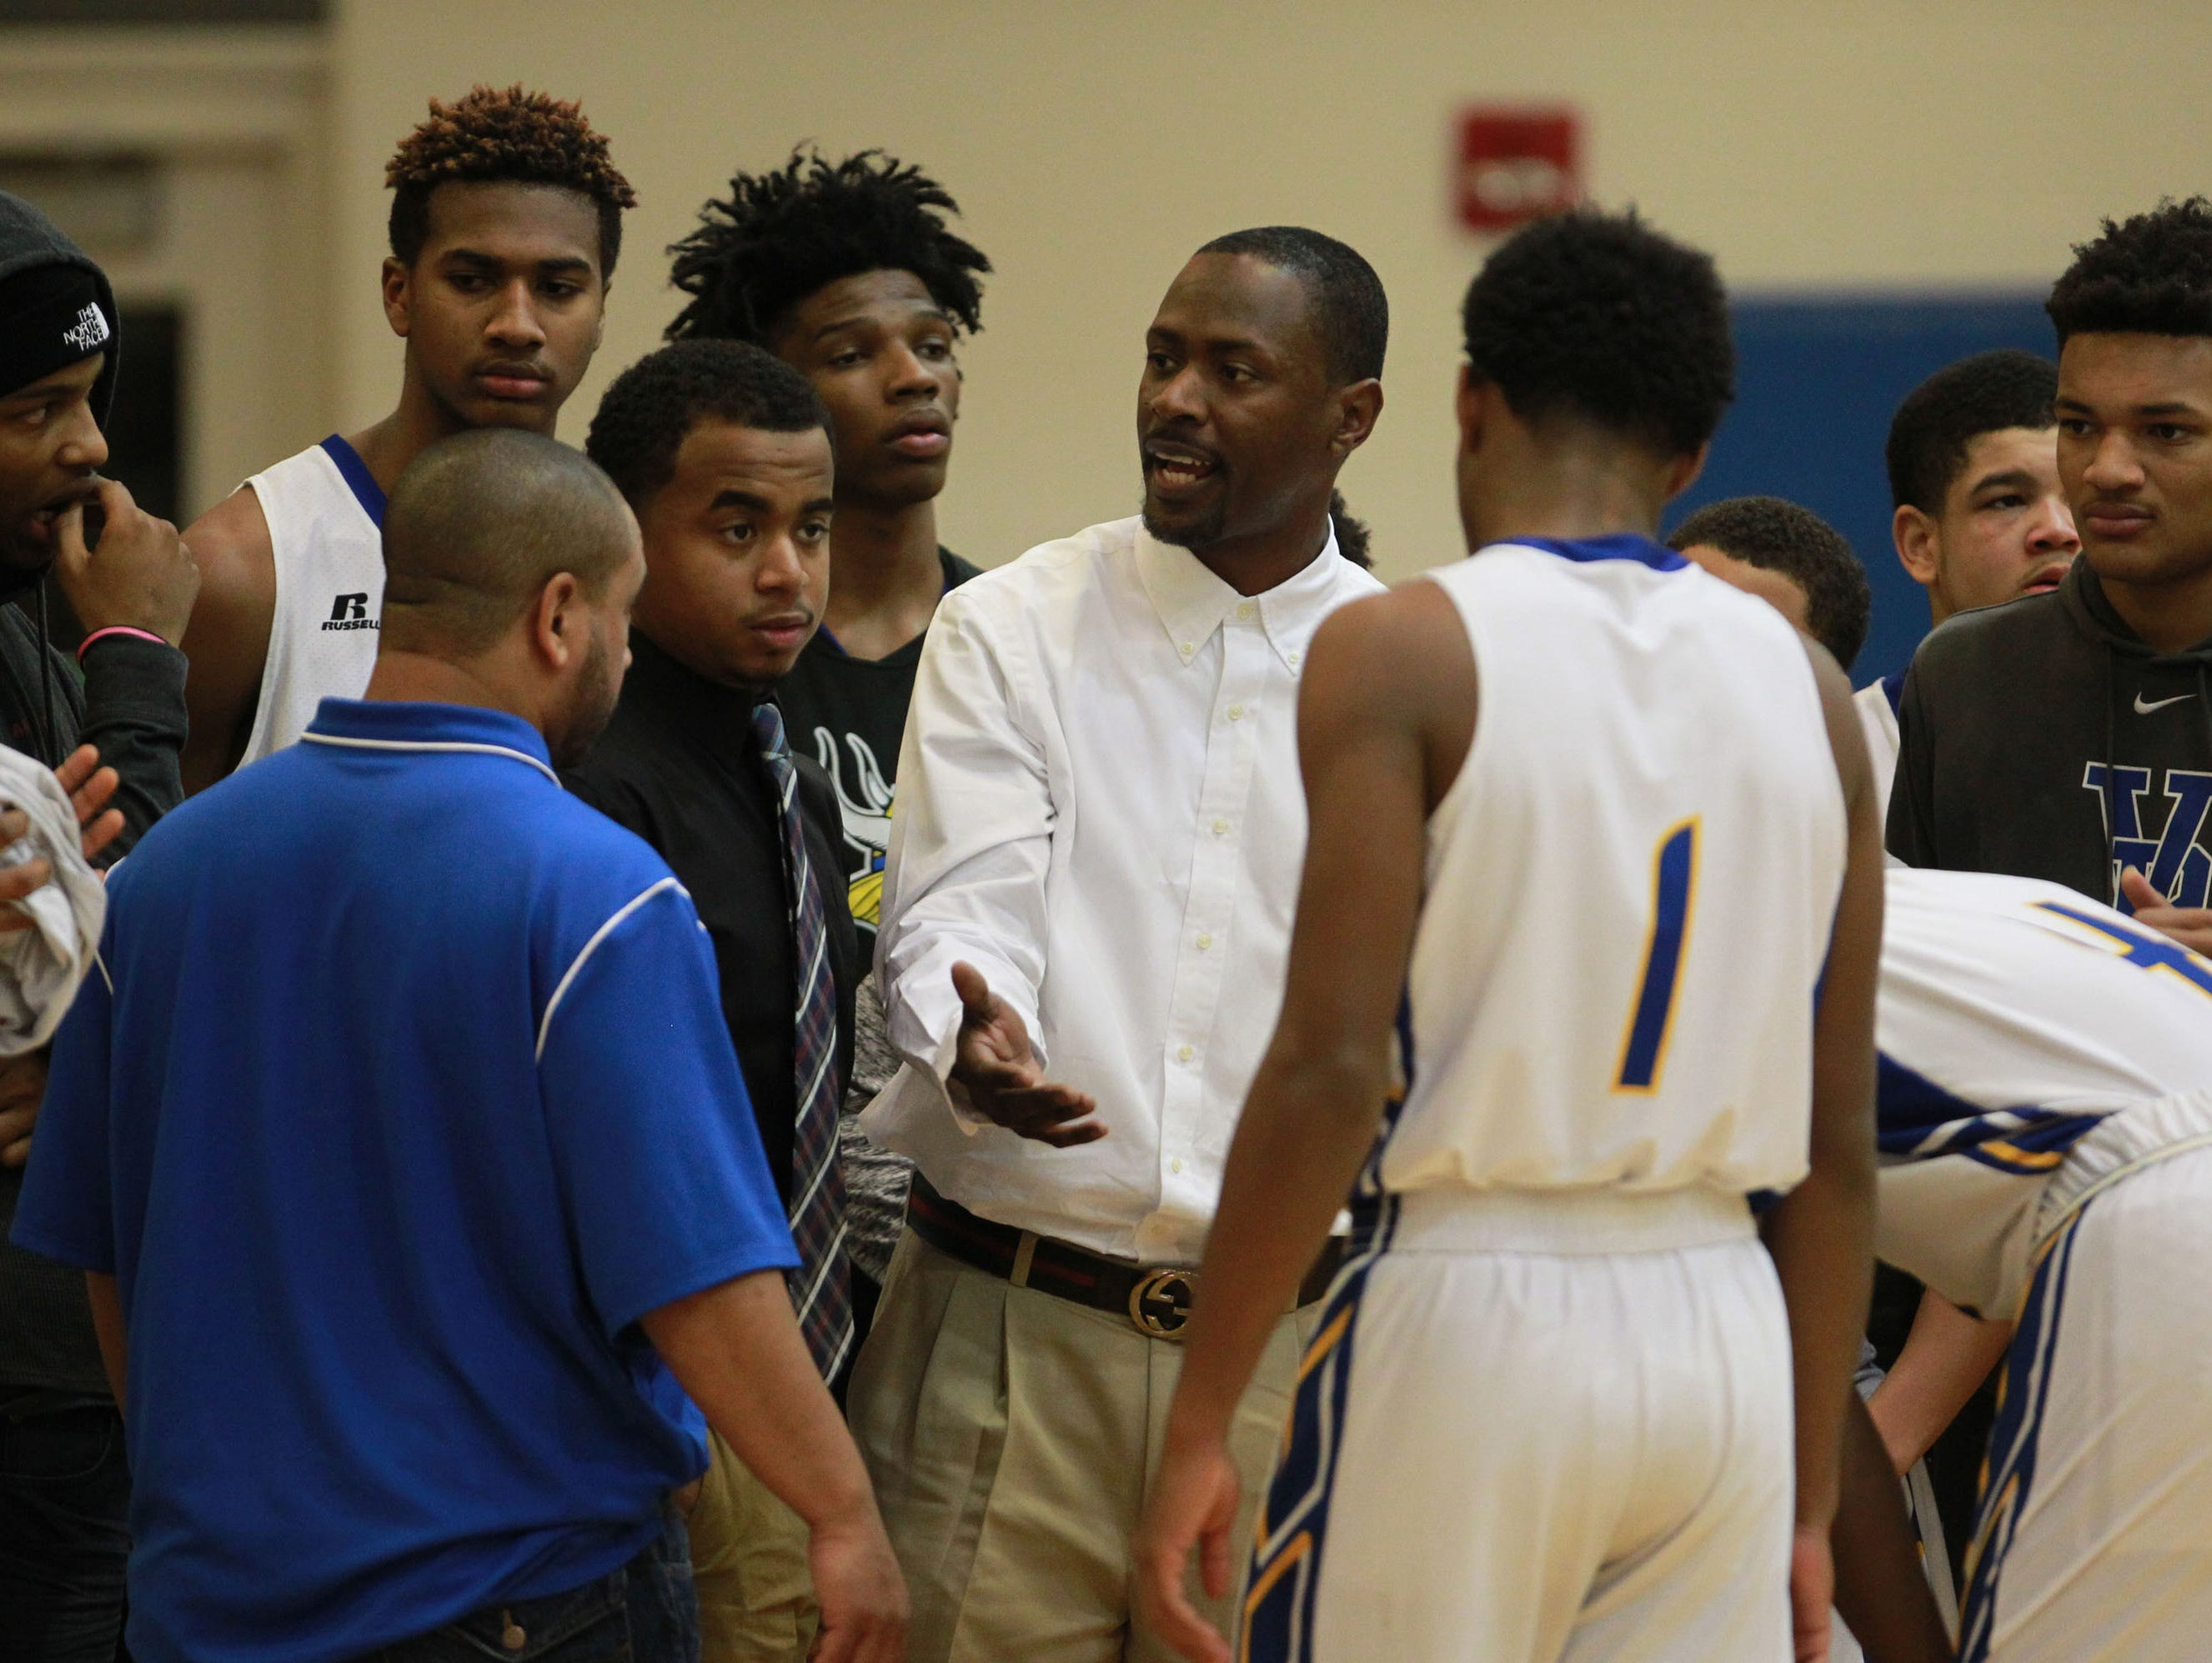 Valley High School head coach DeJuan Wheat (C) talks with his team during a time out against Doss High School during the first half of play at Valley High School in Louisville, Kentucky. January 3, 2017